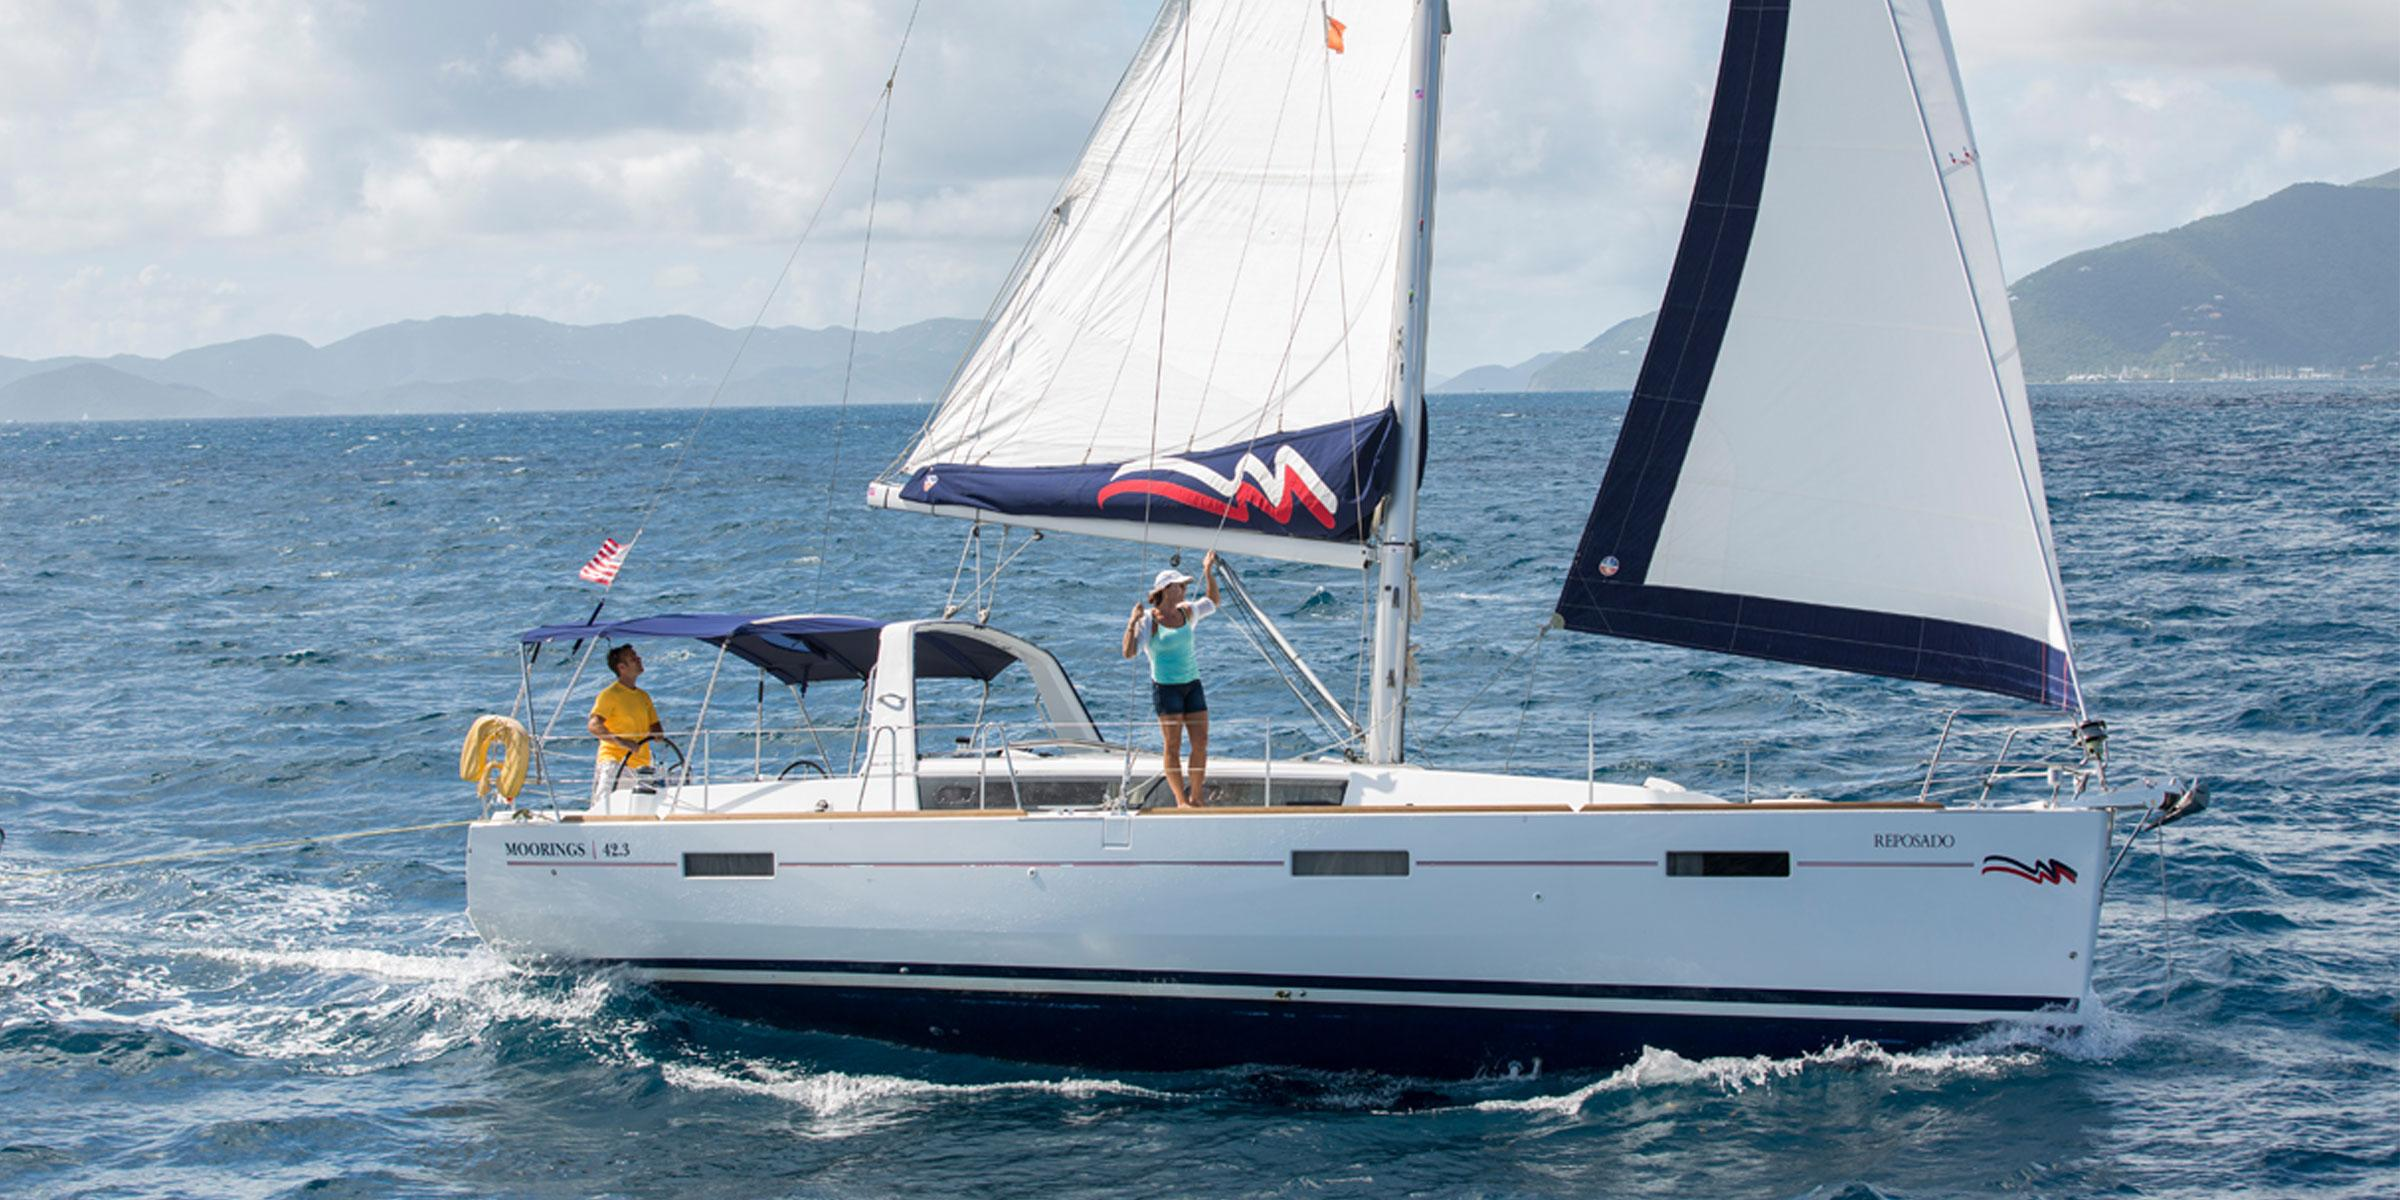 Couple sailing on the Moorings 42.3